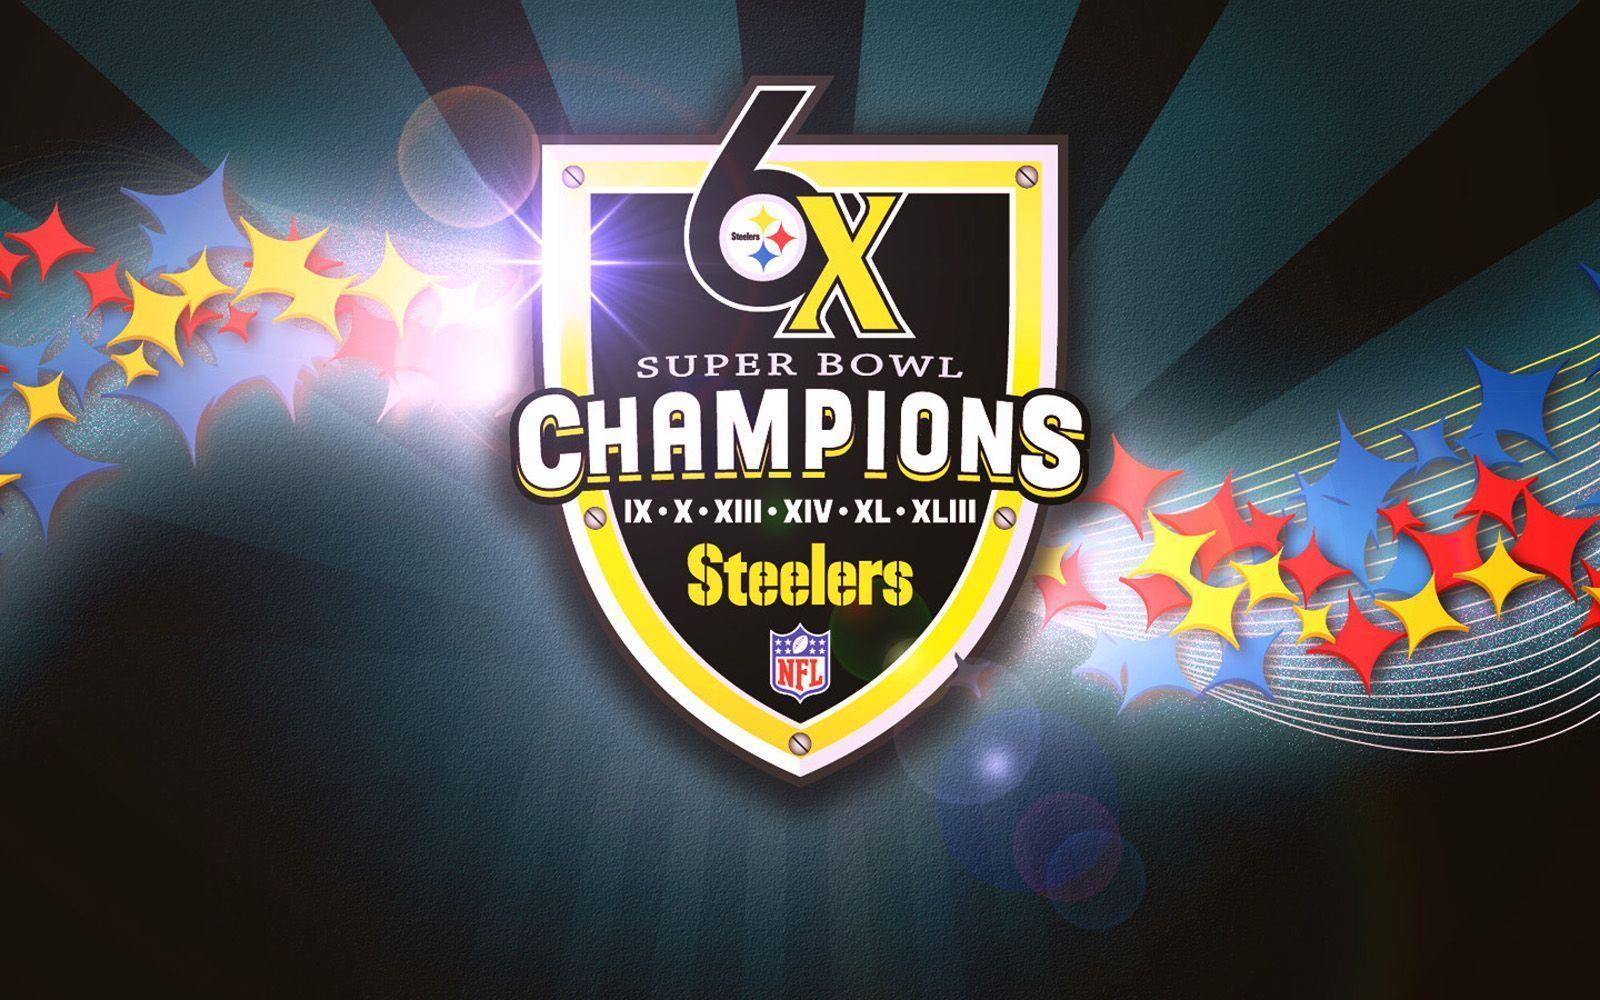 Unusual Free Pittsburgh Steelers Wallpaper - safety-equipment.us